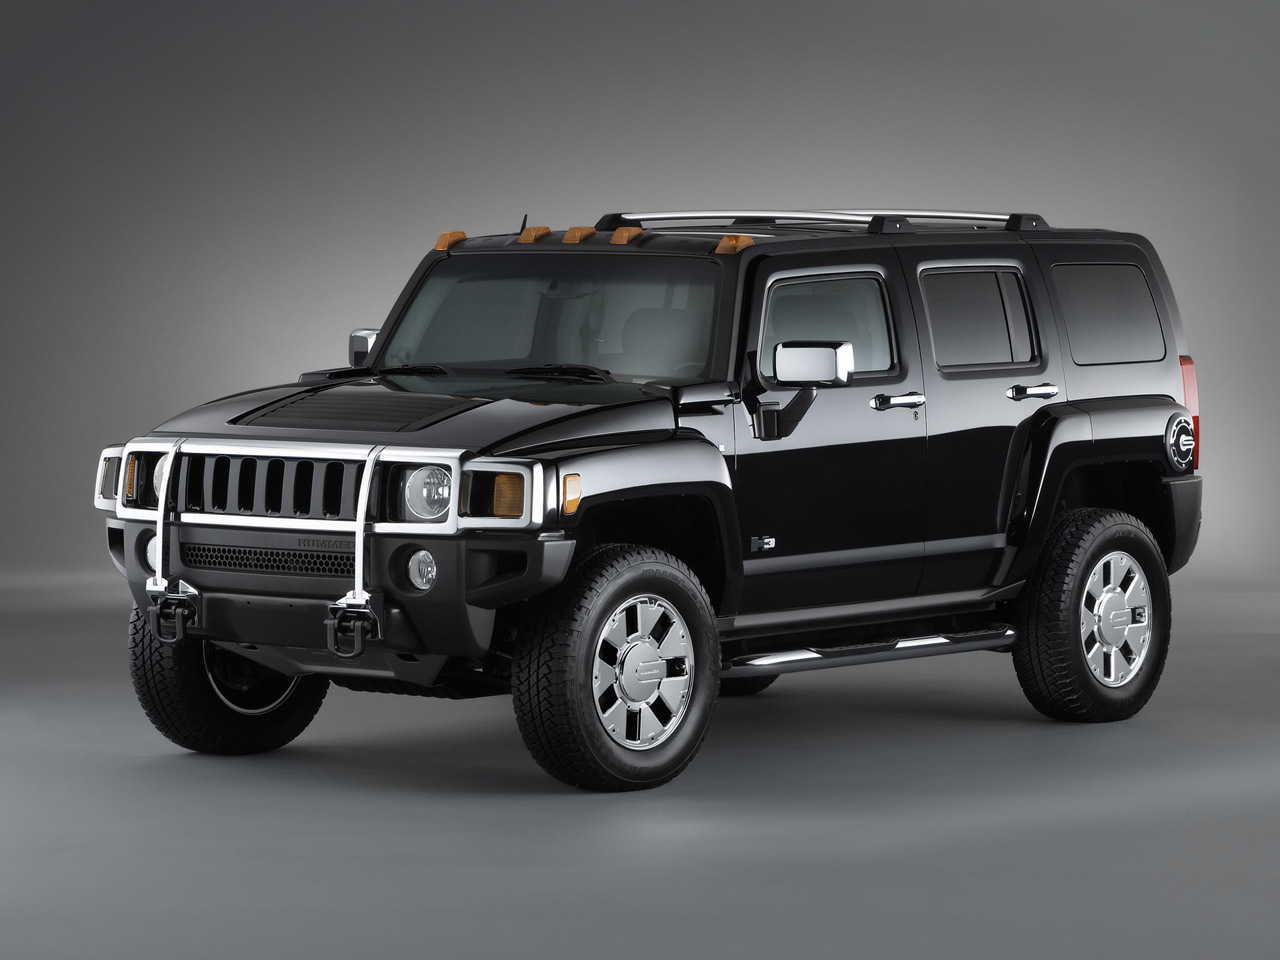 hummer h3 luxury sport review 4x4 hummer reviews. Black Bedroom Furniture Sets. Home Design Ideas